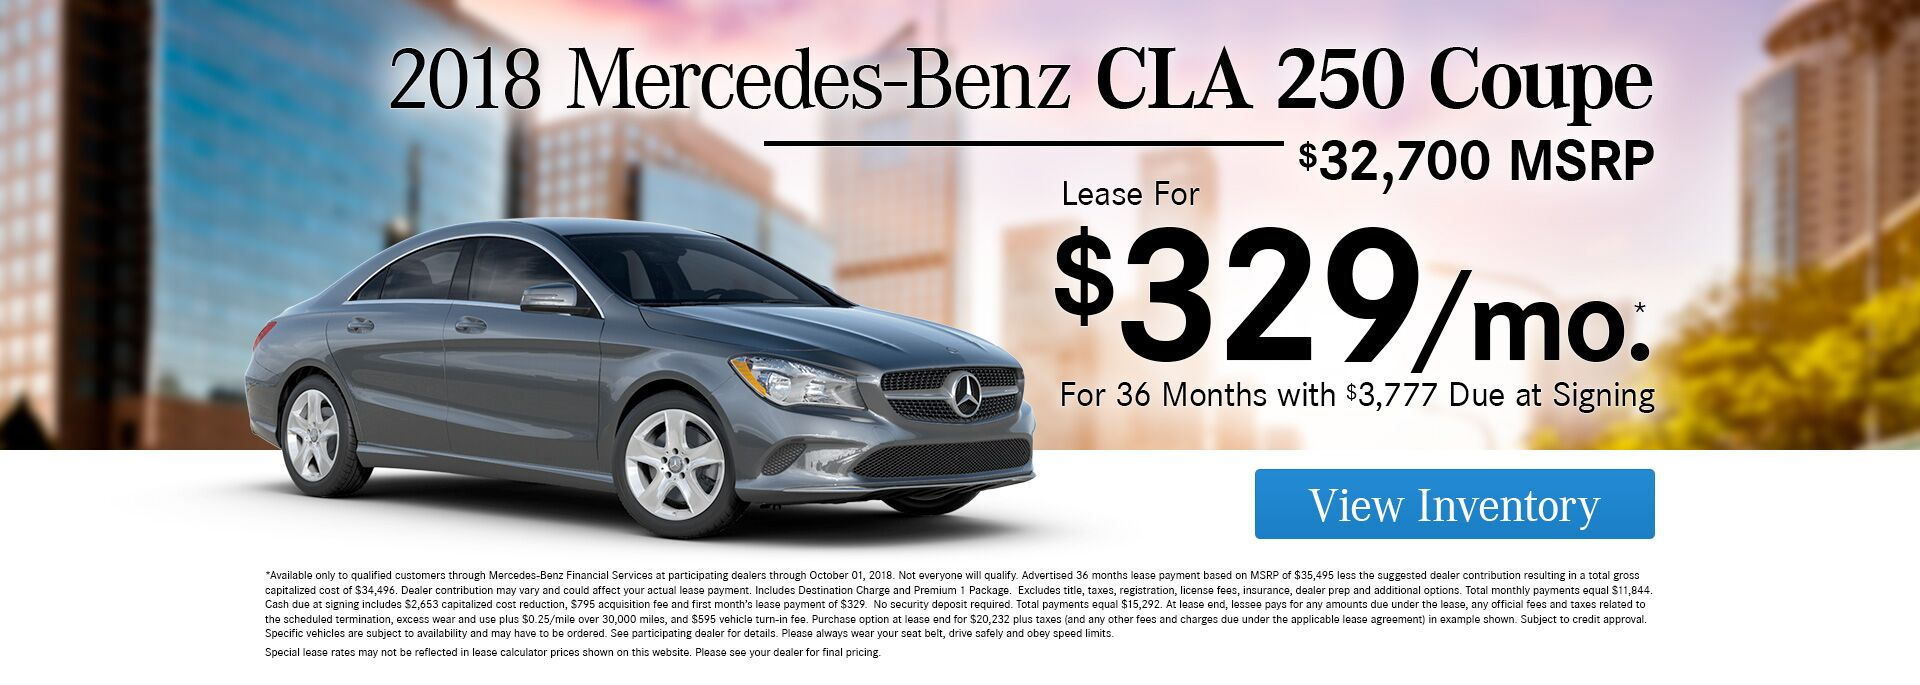 mercedes benz dealership bowling green ky used cars luxury imports of bowling green. Black Bedroom Furniture Sets. Home Design Ideas